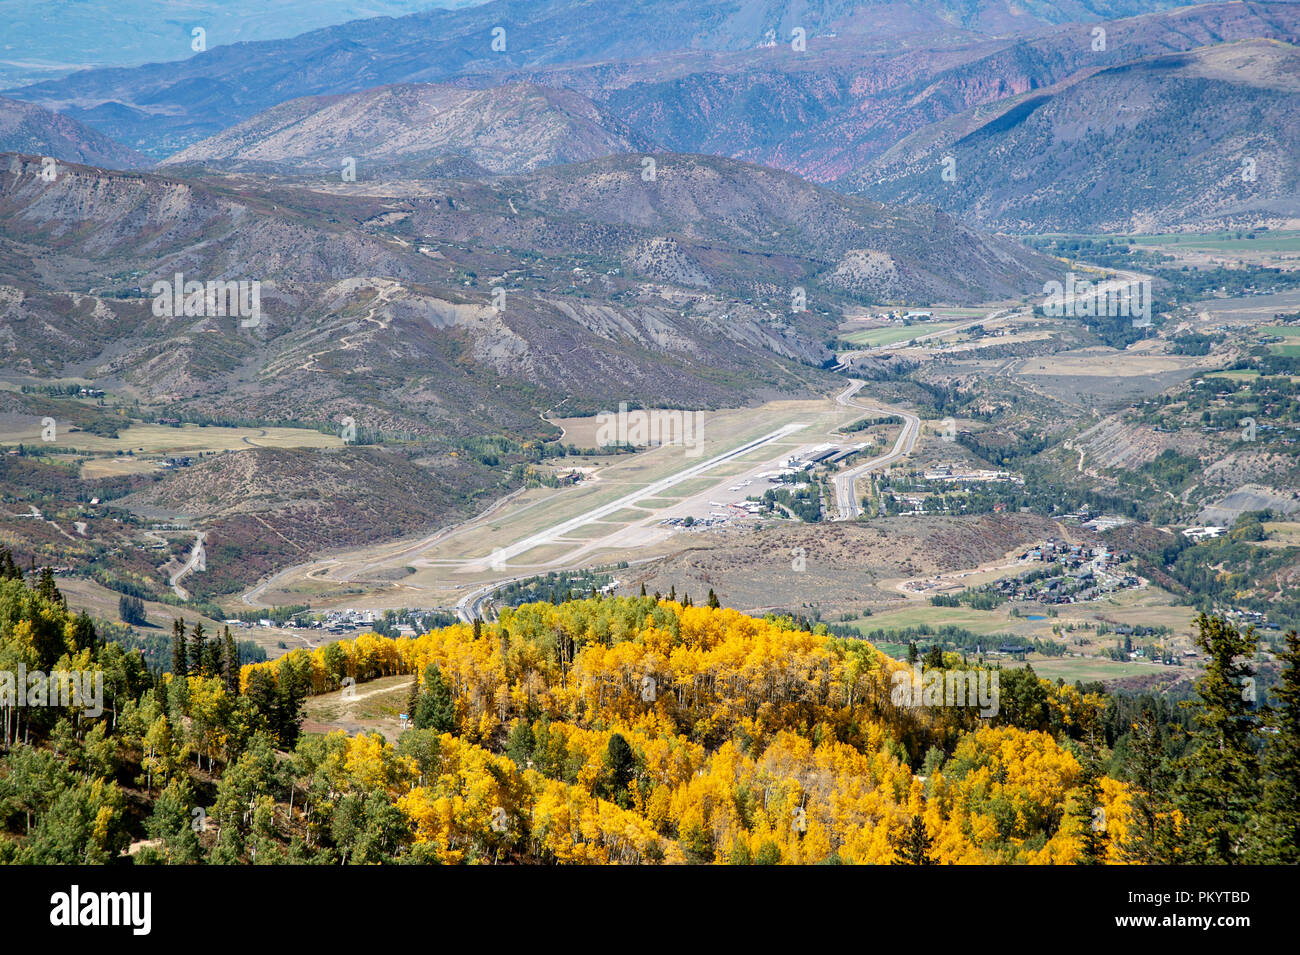 Aspen Airport in Colorado, USA - Stock Image